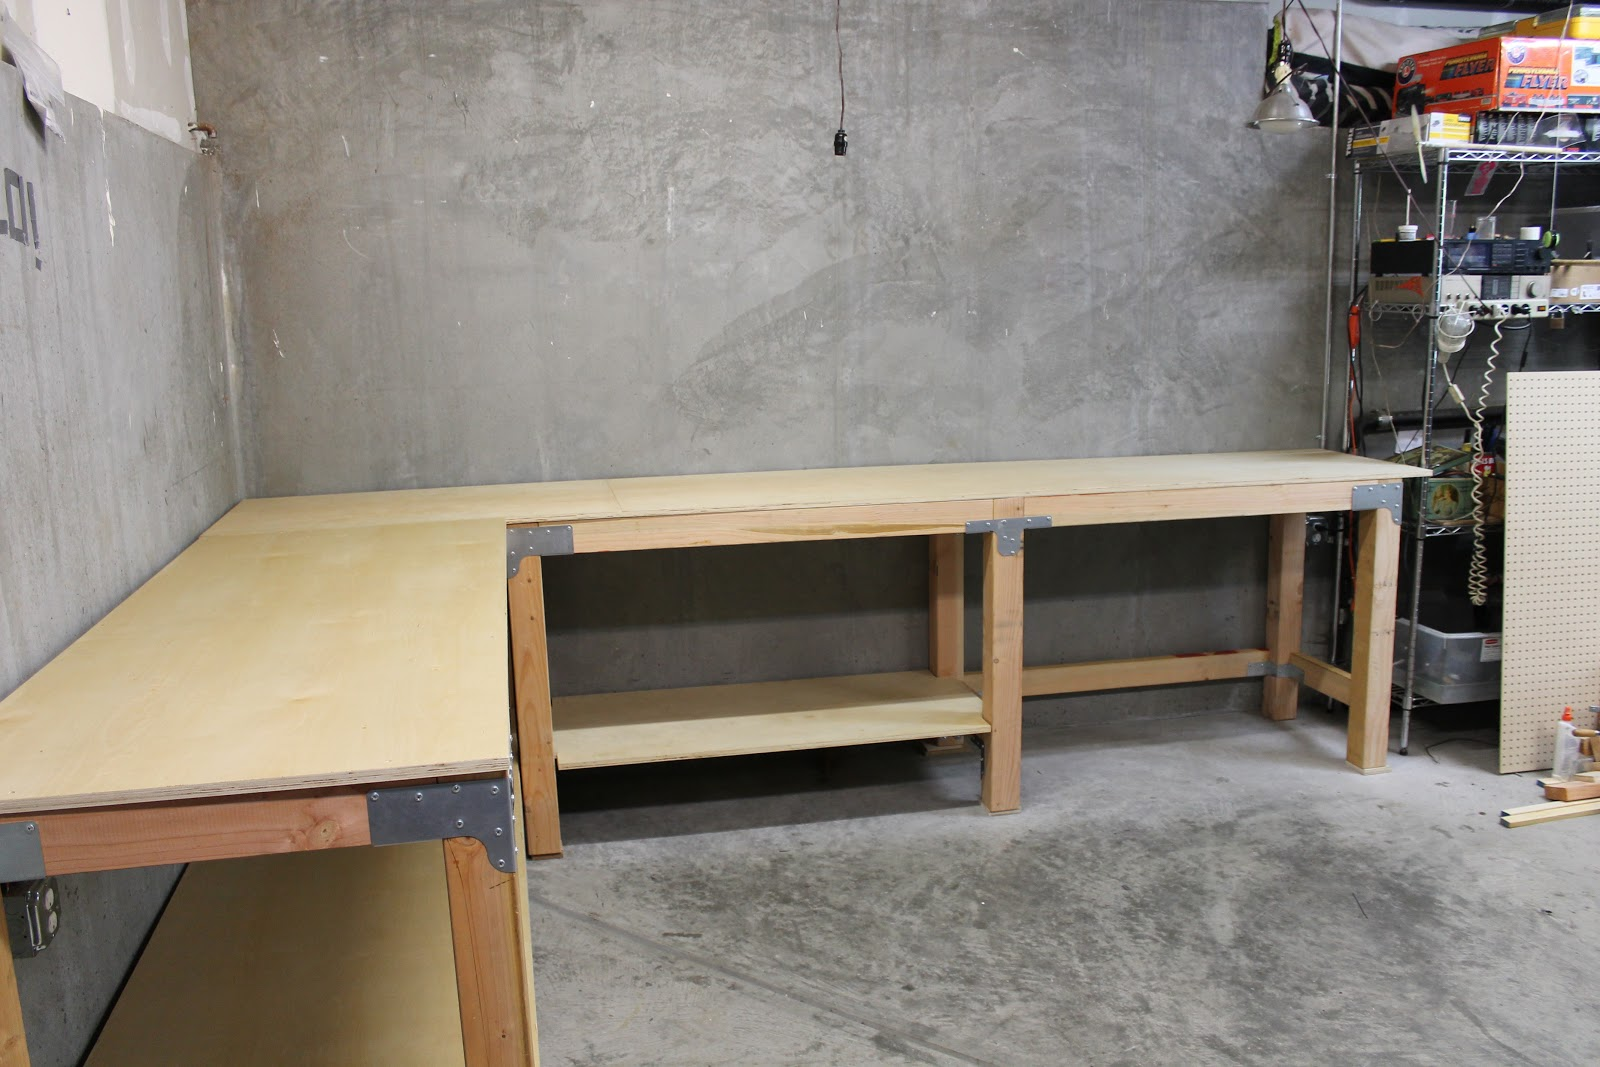 DIY Custom Garage WorkBench | RenoCompare